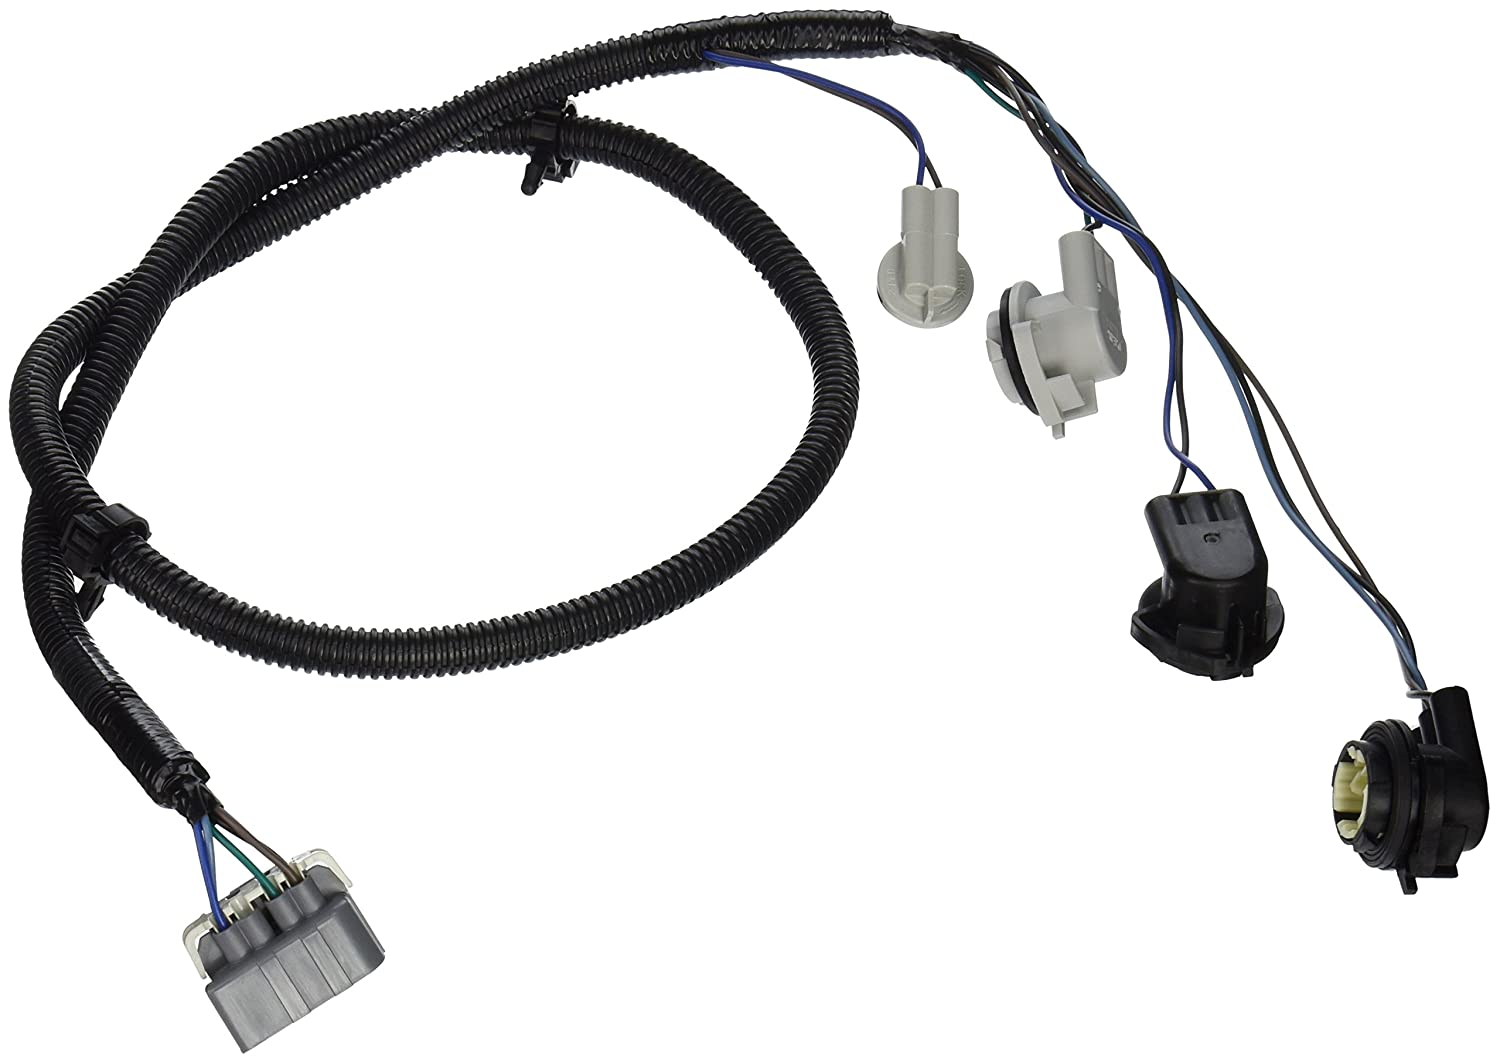 81sfkEXtmvL._SL1500_ amazon com genuine gm 16531401 tail lamp wiring harness automotive GM Turn Signal Wiring at virtualis.co